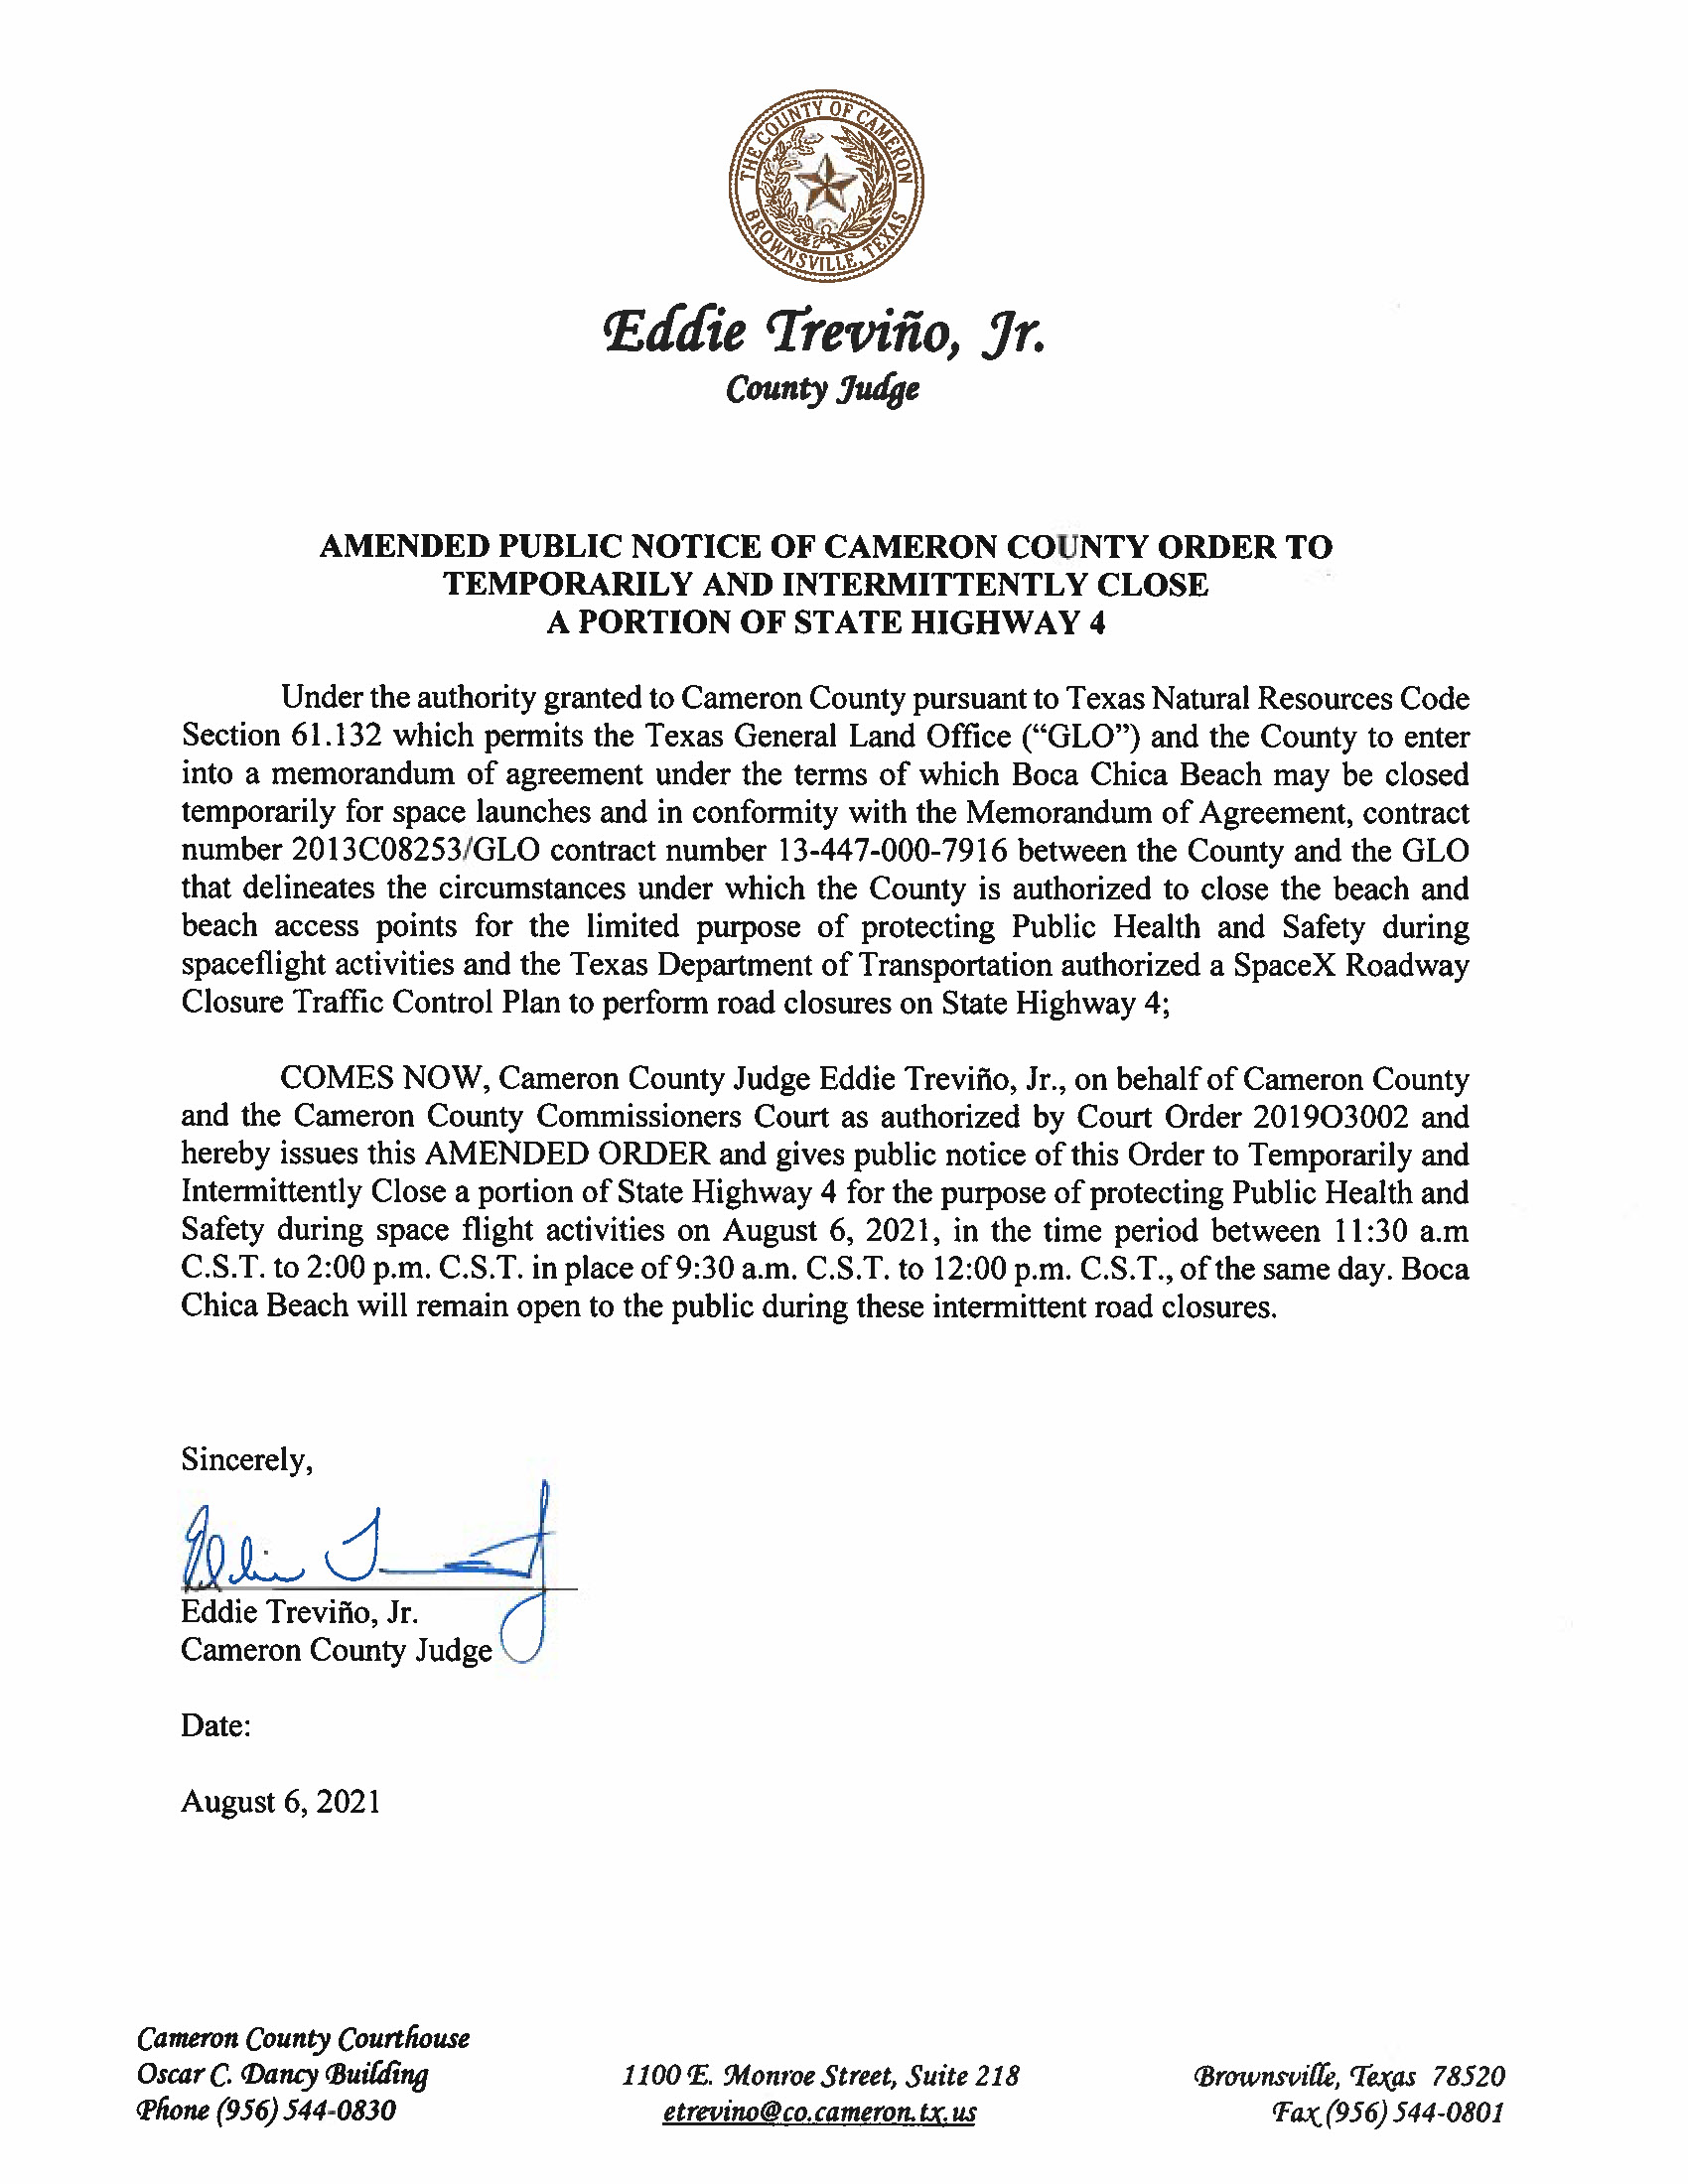 AMENDED PUBLIC NOTICE OF CAMERON COUNTY ORDER TO TEMP. ROAD CLOSURE. 08.06.2021